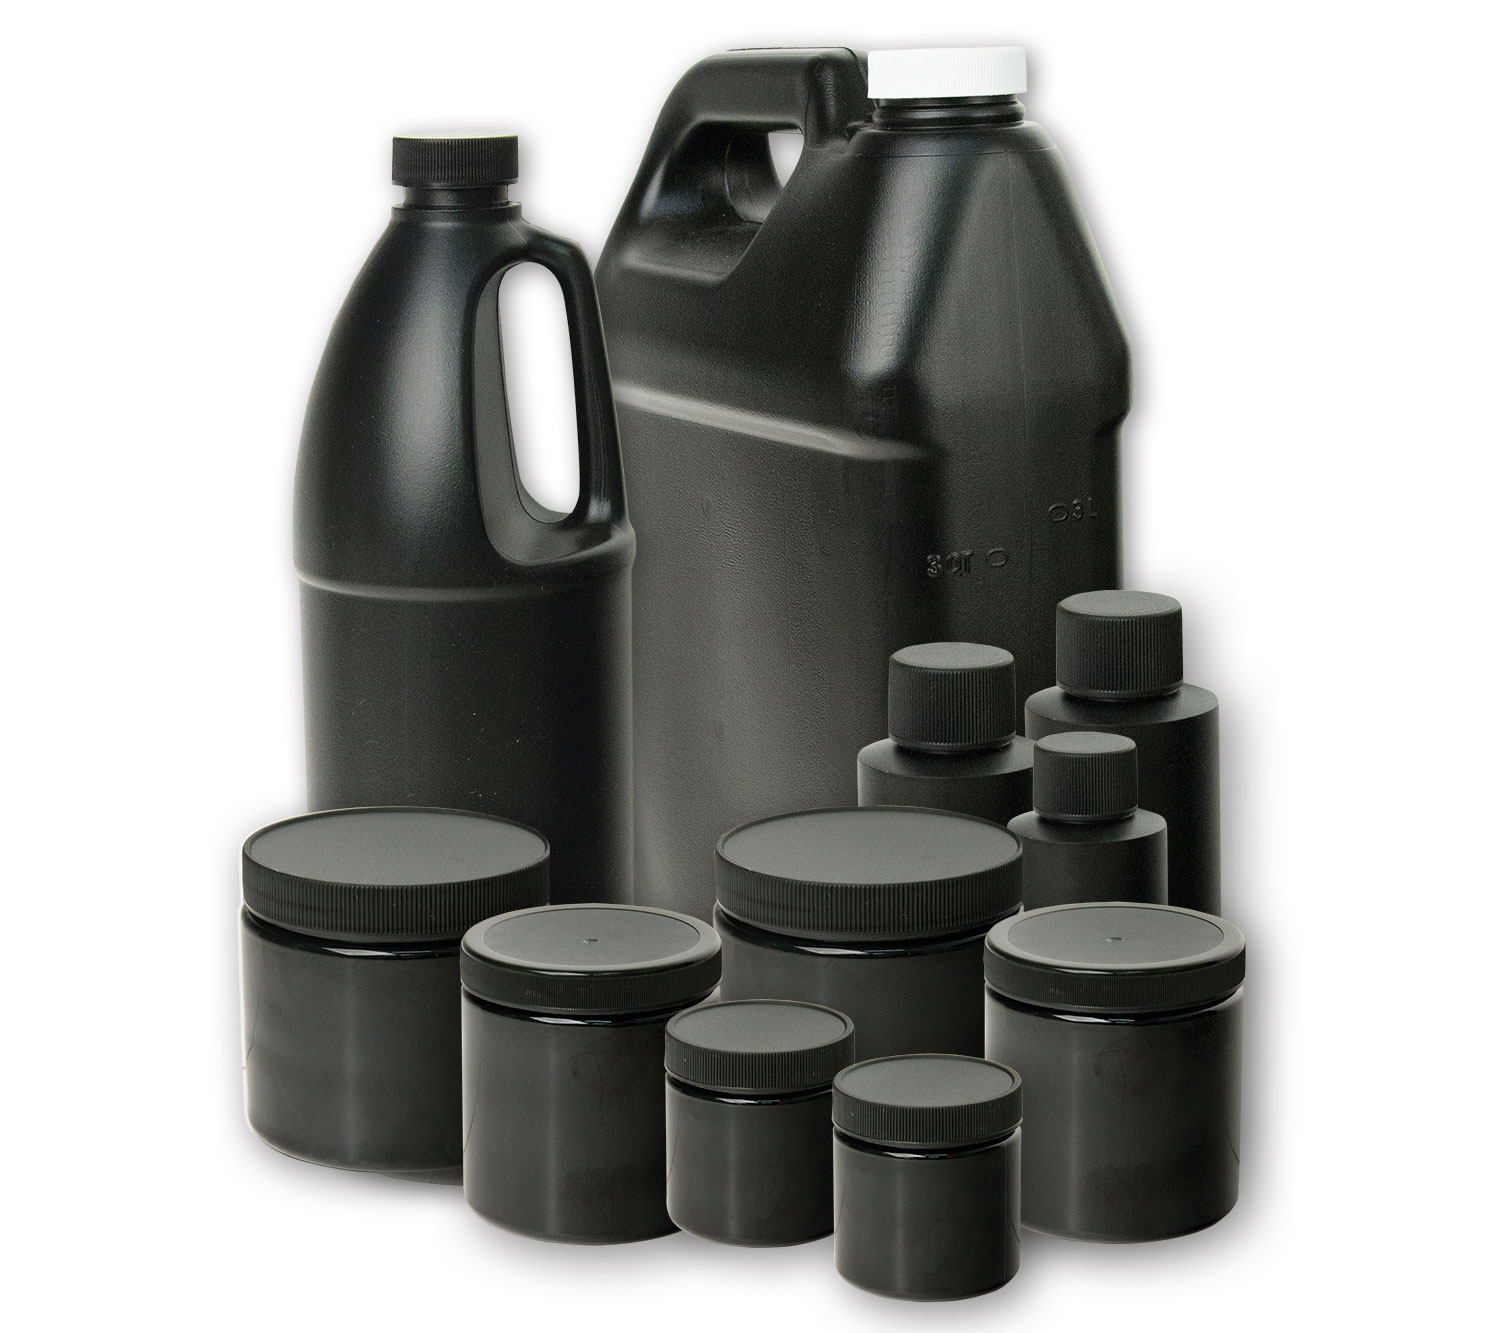 black-containers-group-w-jugs_RGB.jpg